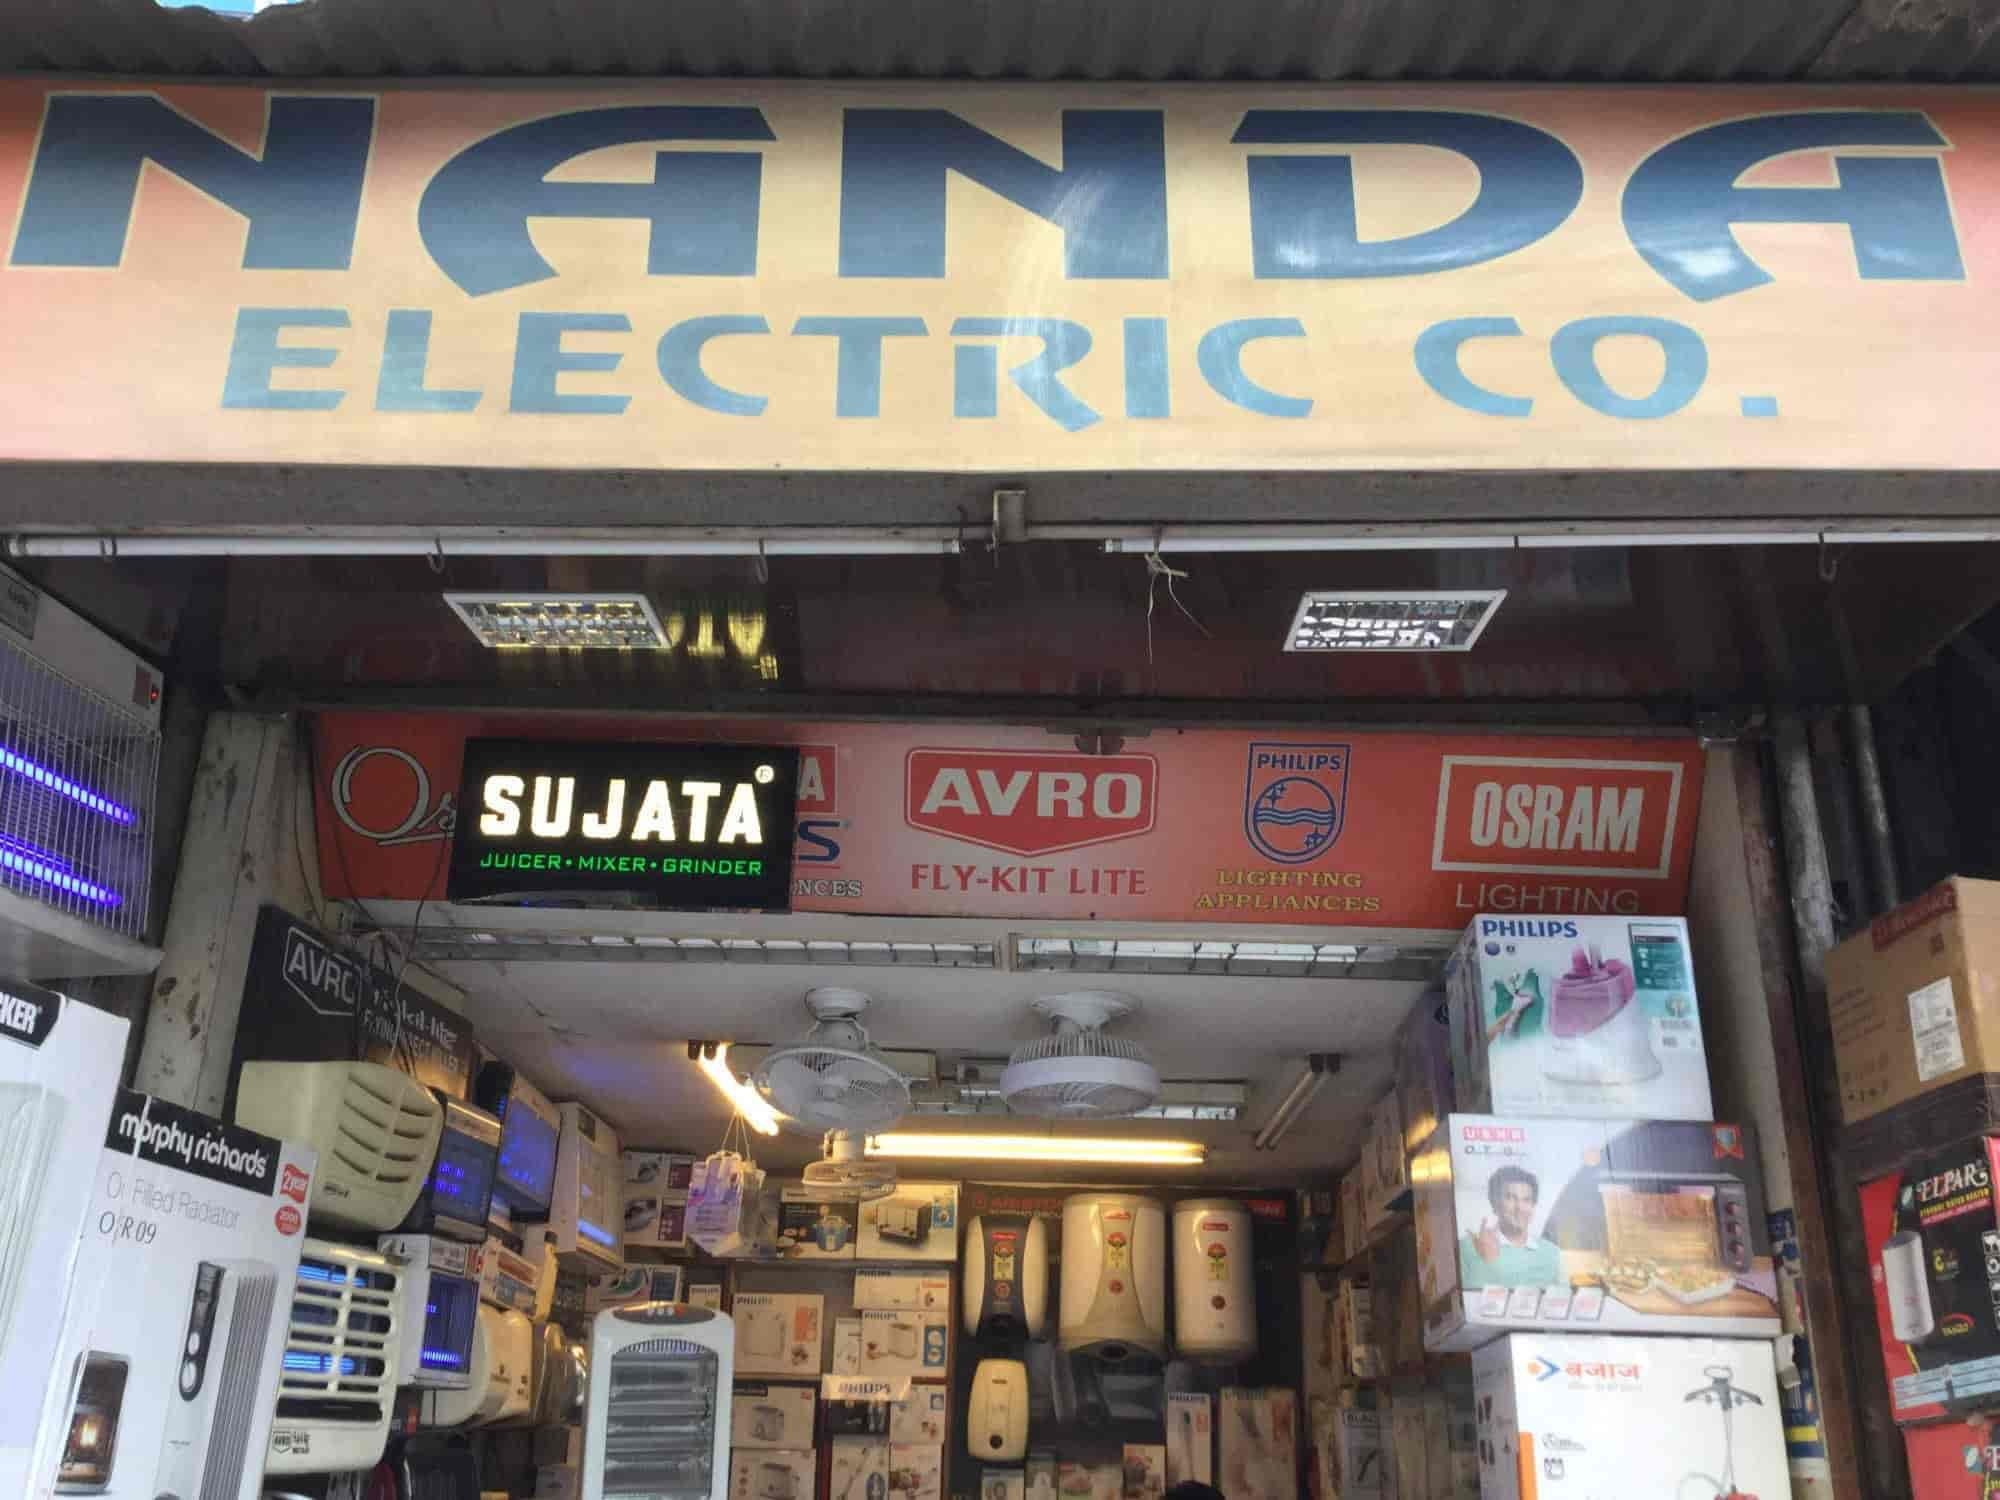 Nanda electric company, South Extension 1 - Electrical Shops